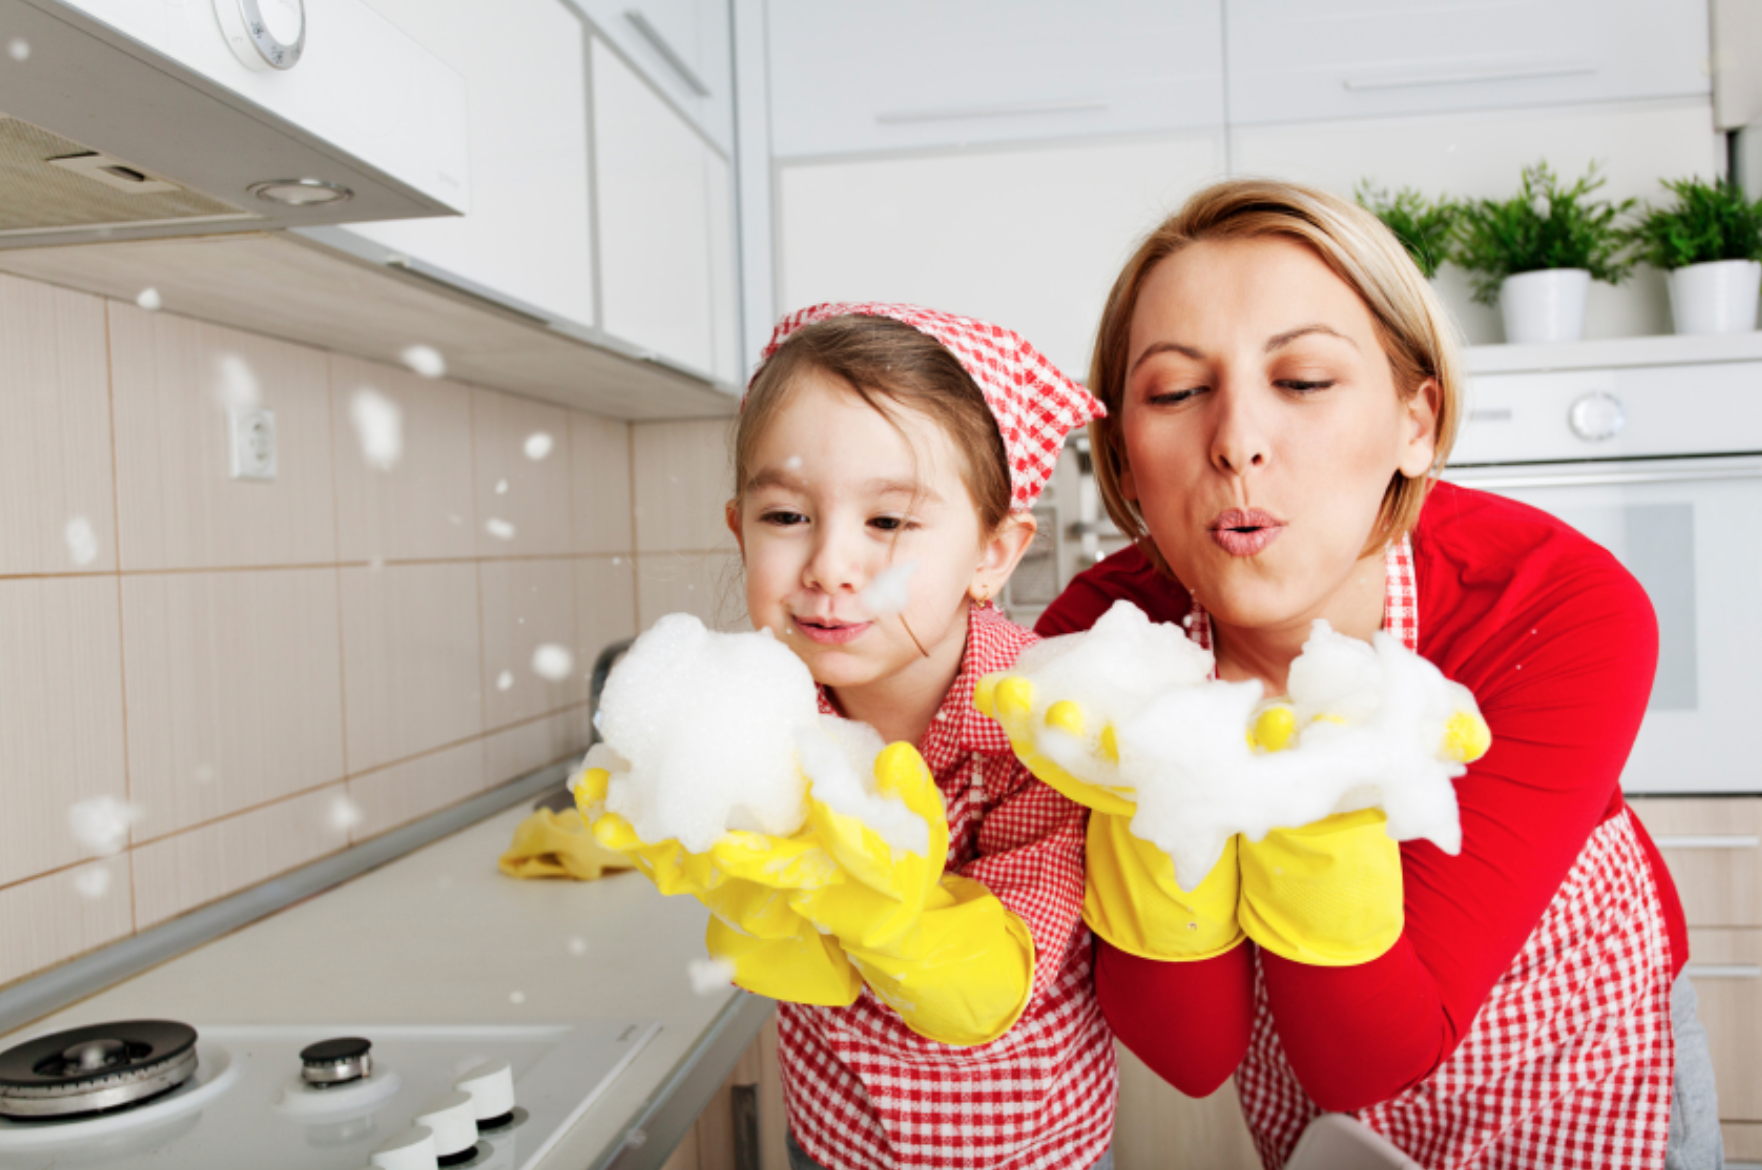 free house cleaning with 3 referrals